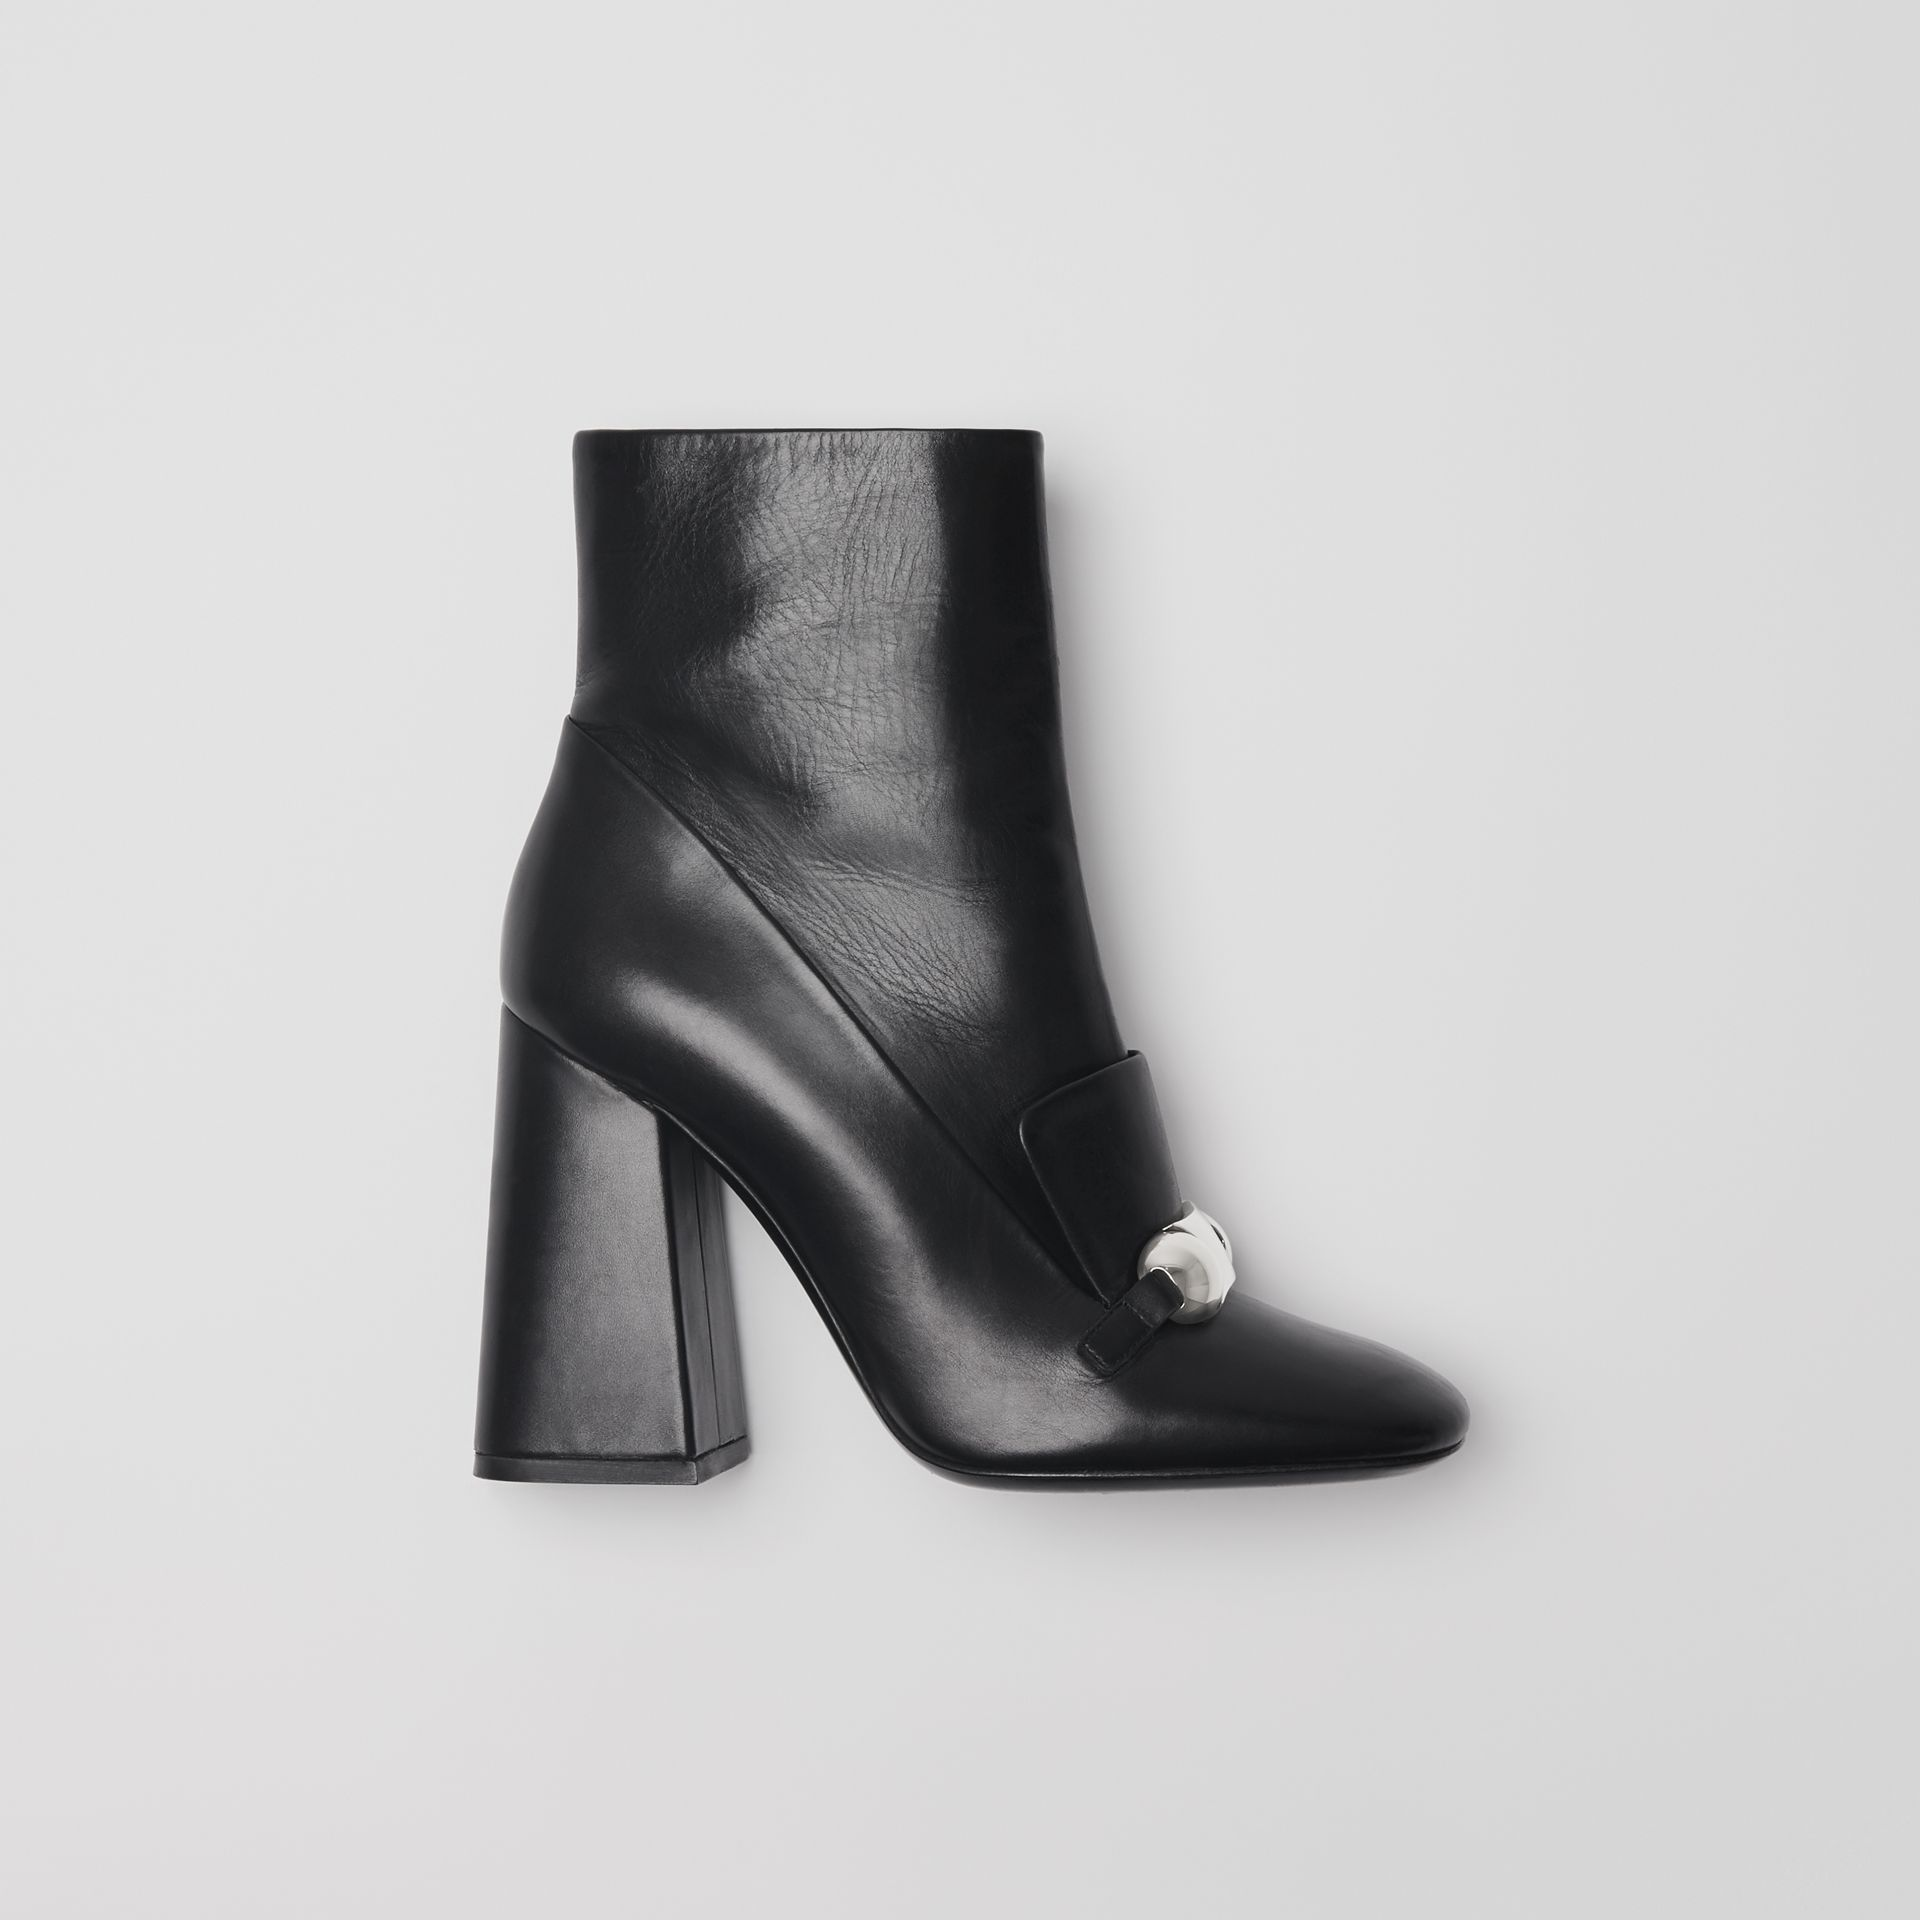 Bottines en cuir avec bride cloutée (Noir) - Femme | Burberry Canada - photo de la galerie 0